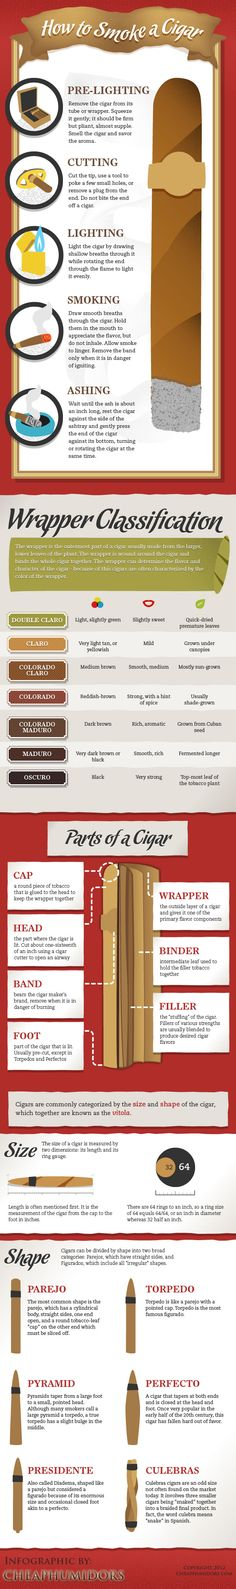 "How to Smoke a Cigar #cigar www.LiquorList.com  ""The Marketplace for Adults with Taste!""  @LiquorListcom  #LiquorList"